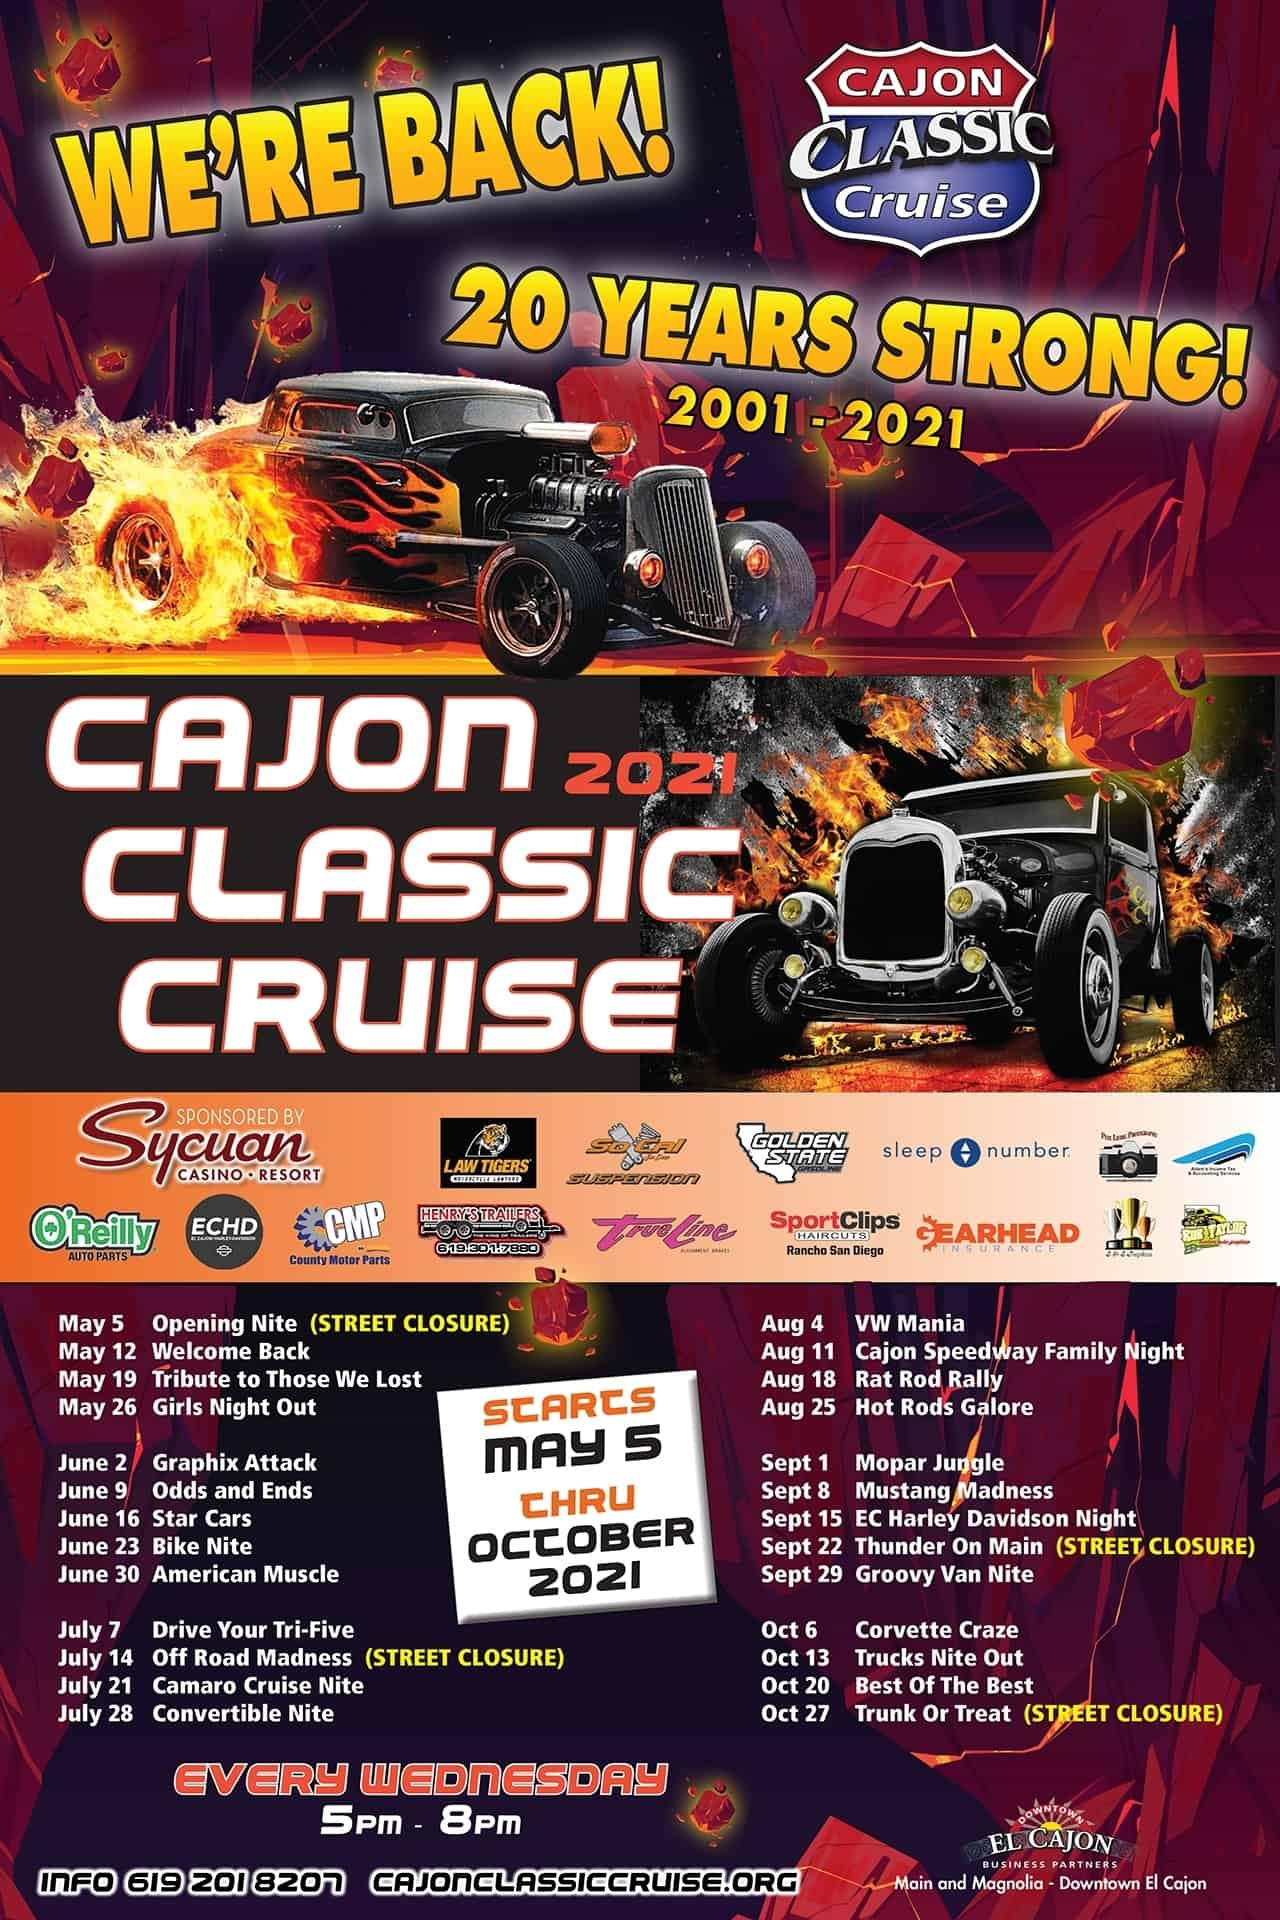 Cajon Classic Cruise Car Shows 2021 Schedule | Downtown El Cajon